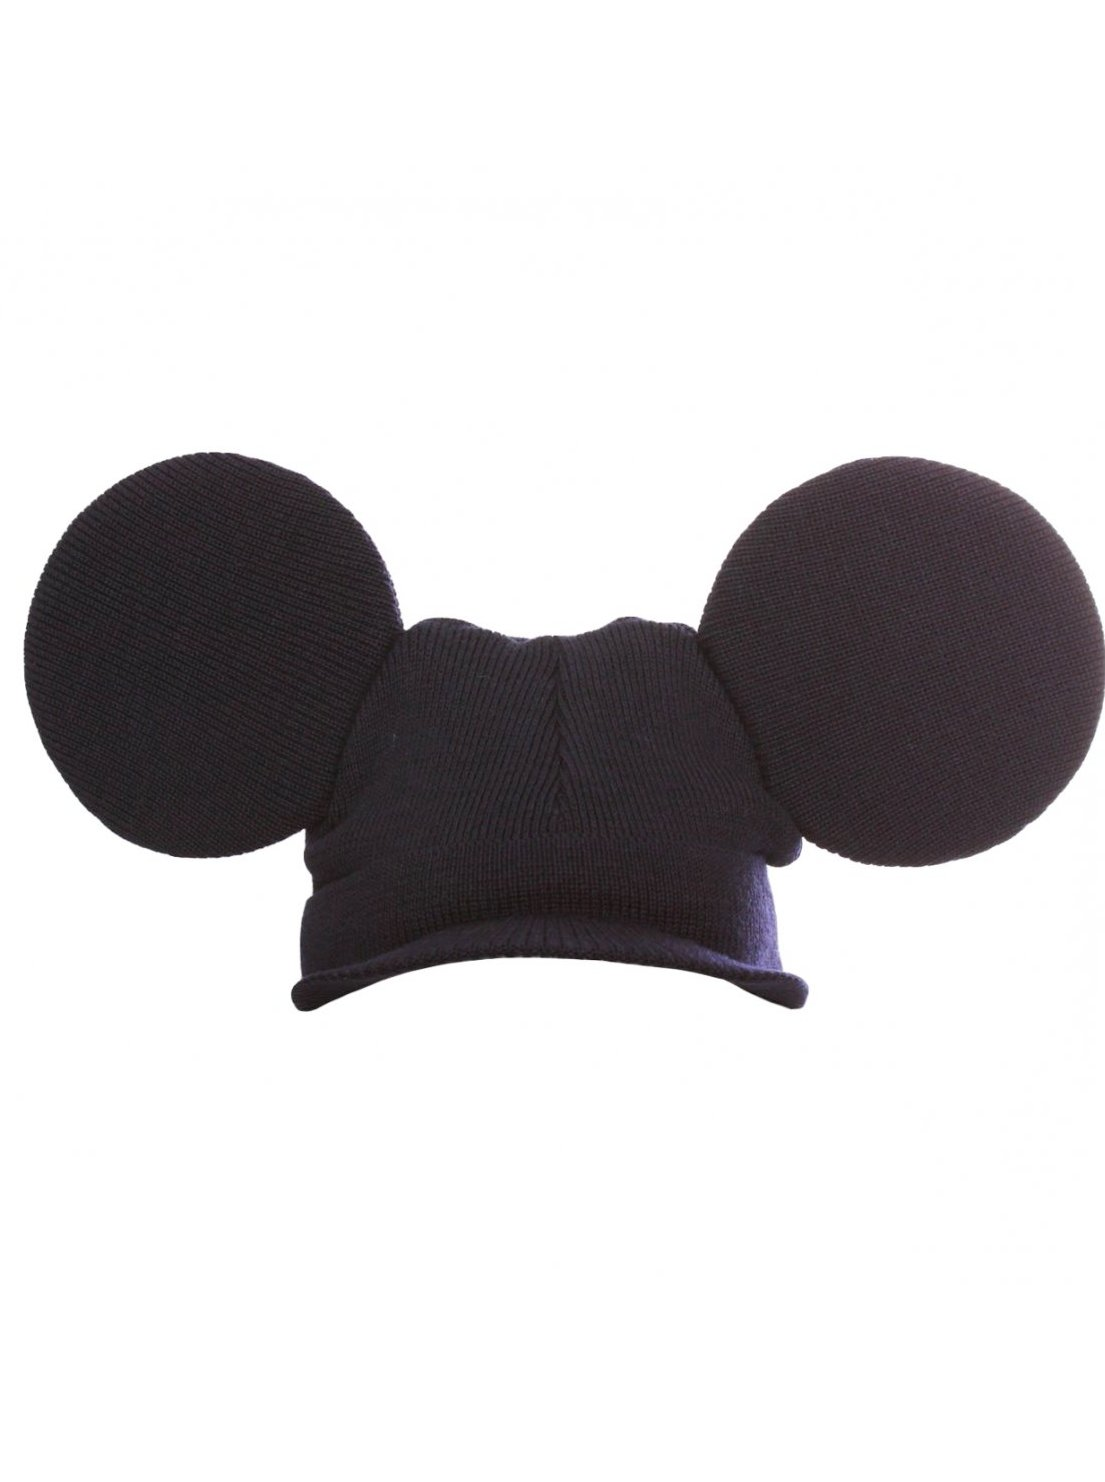 Save Mickey Mouse Ears Image